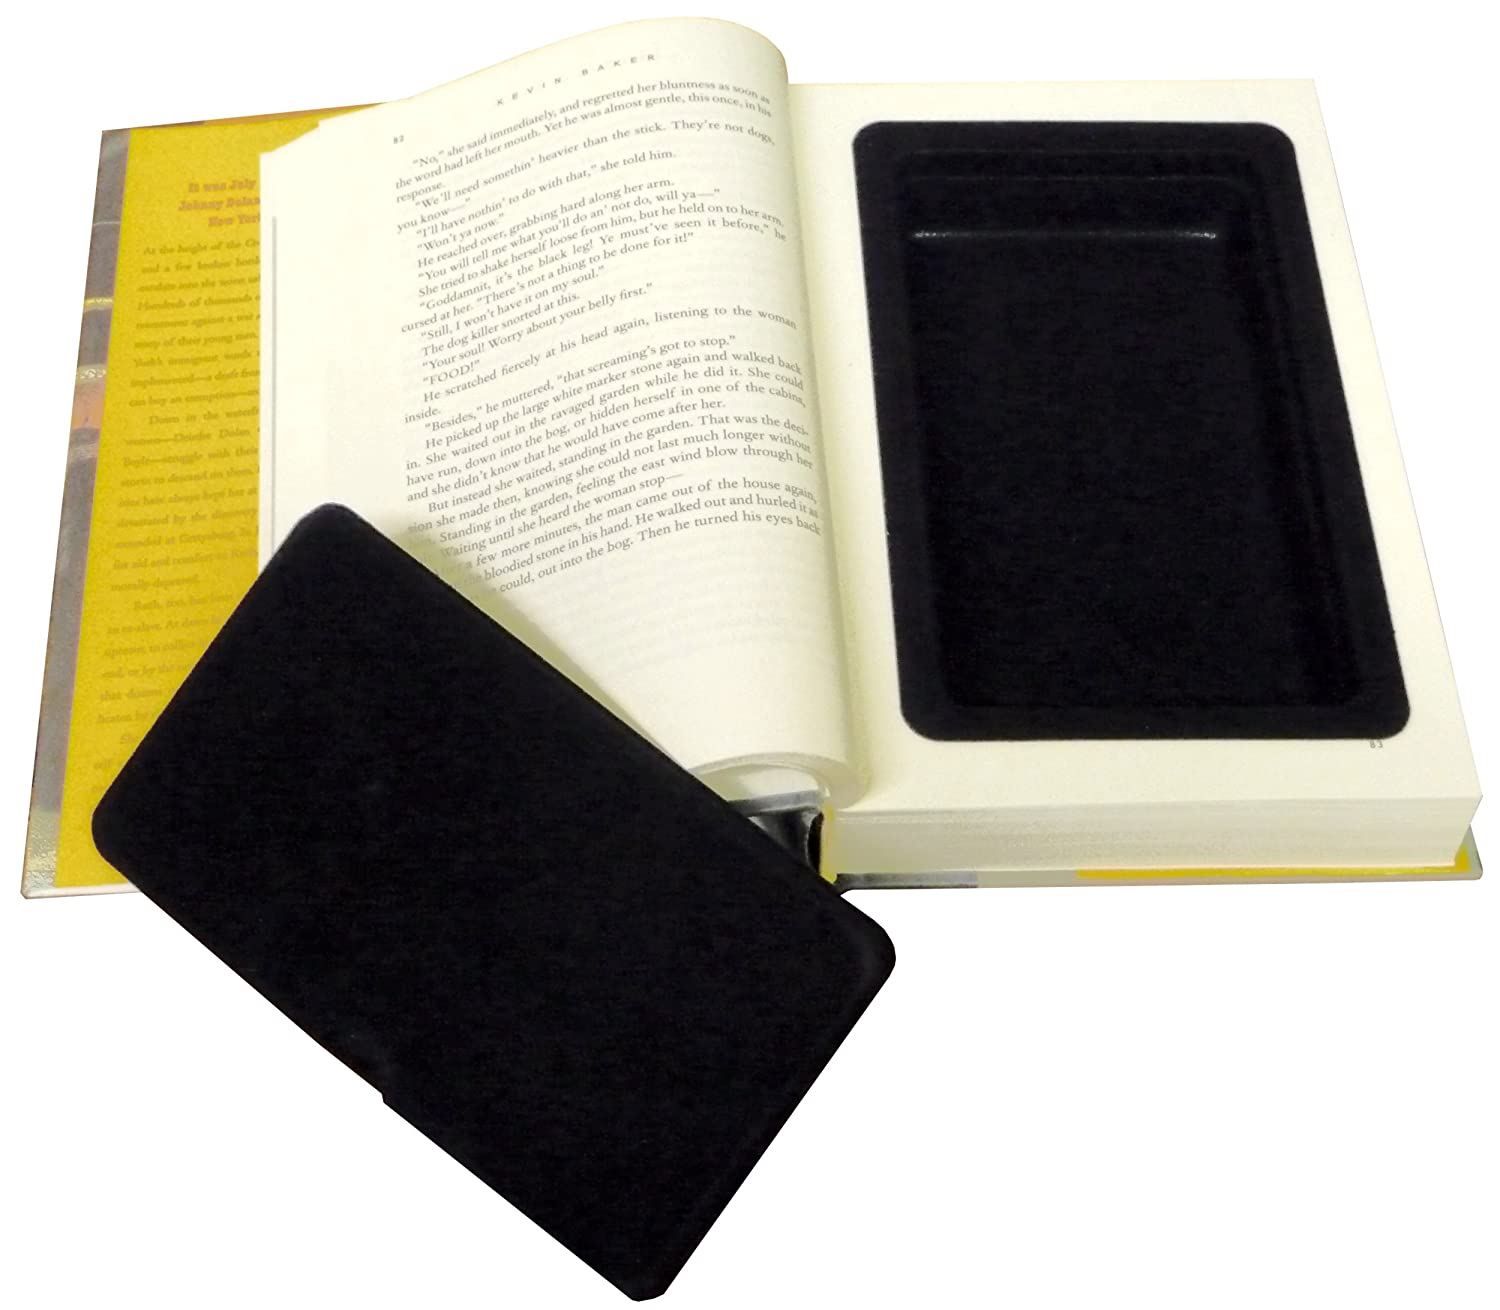 Southwest Specialty Products 60001S Book Diversion Safe, Title of Book May Vary